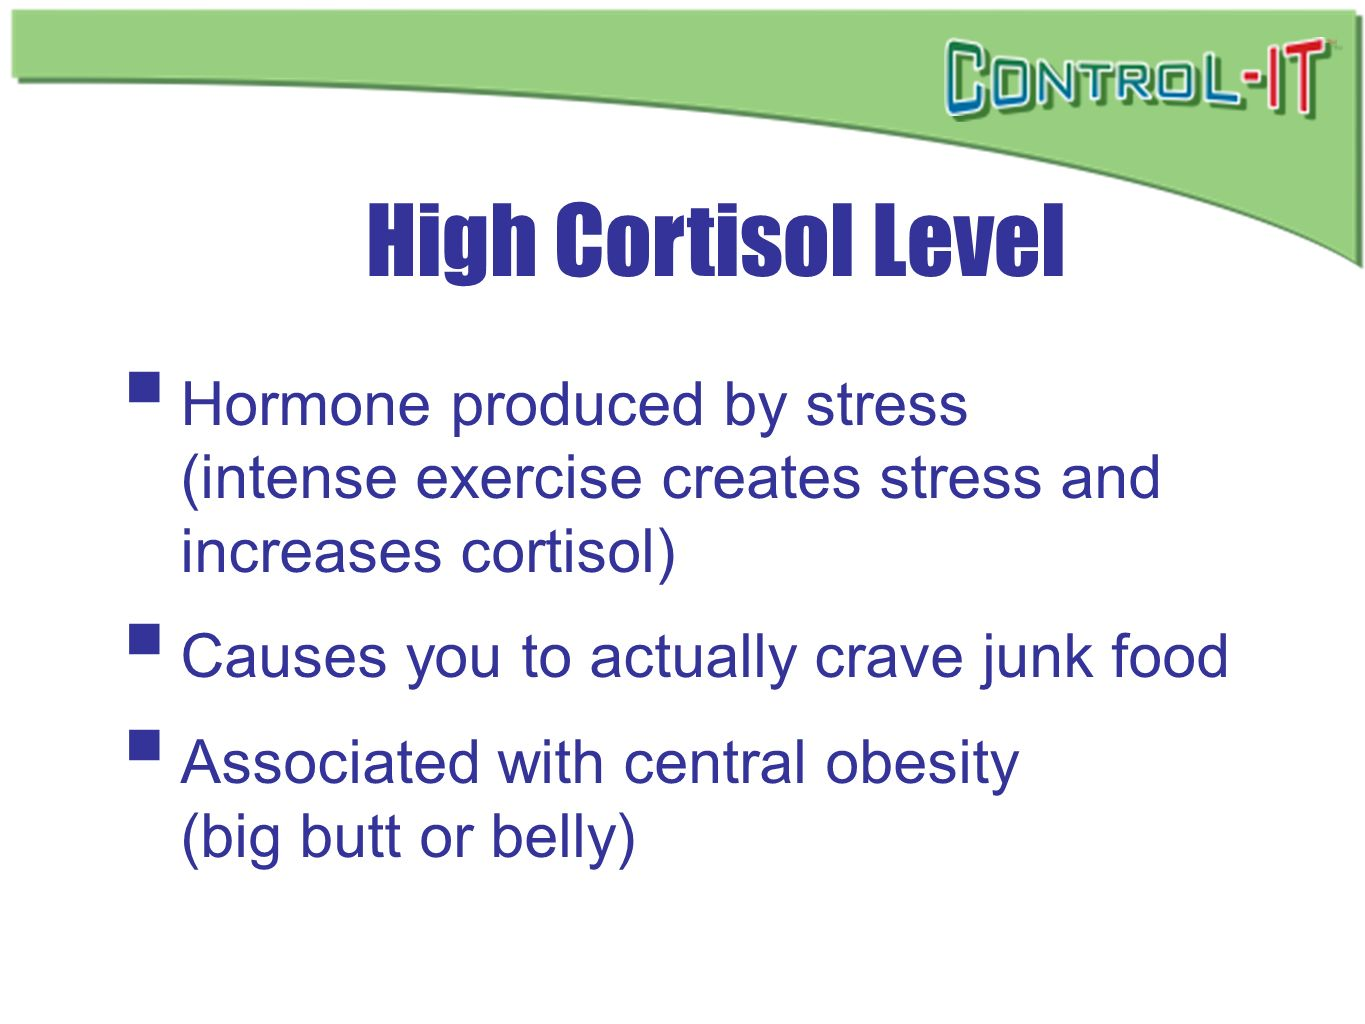 High Cortisol LevelHormone produced by stress (intense exercise creates stress and increases cortisol)